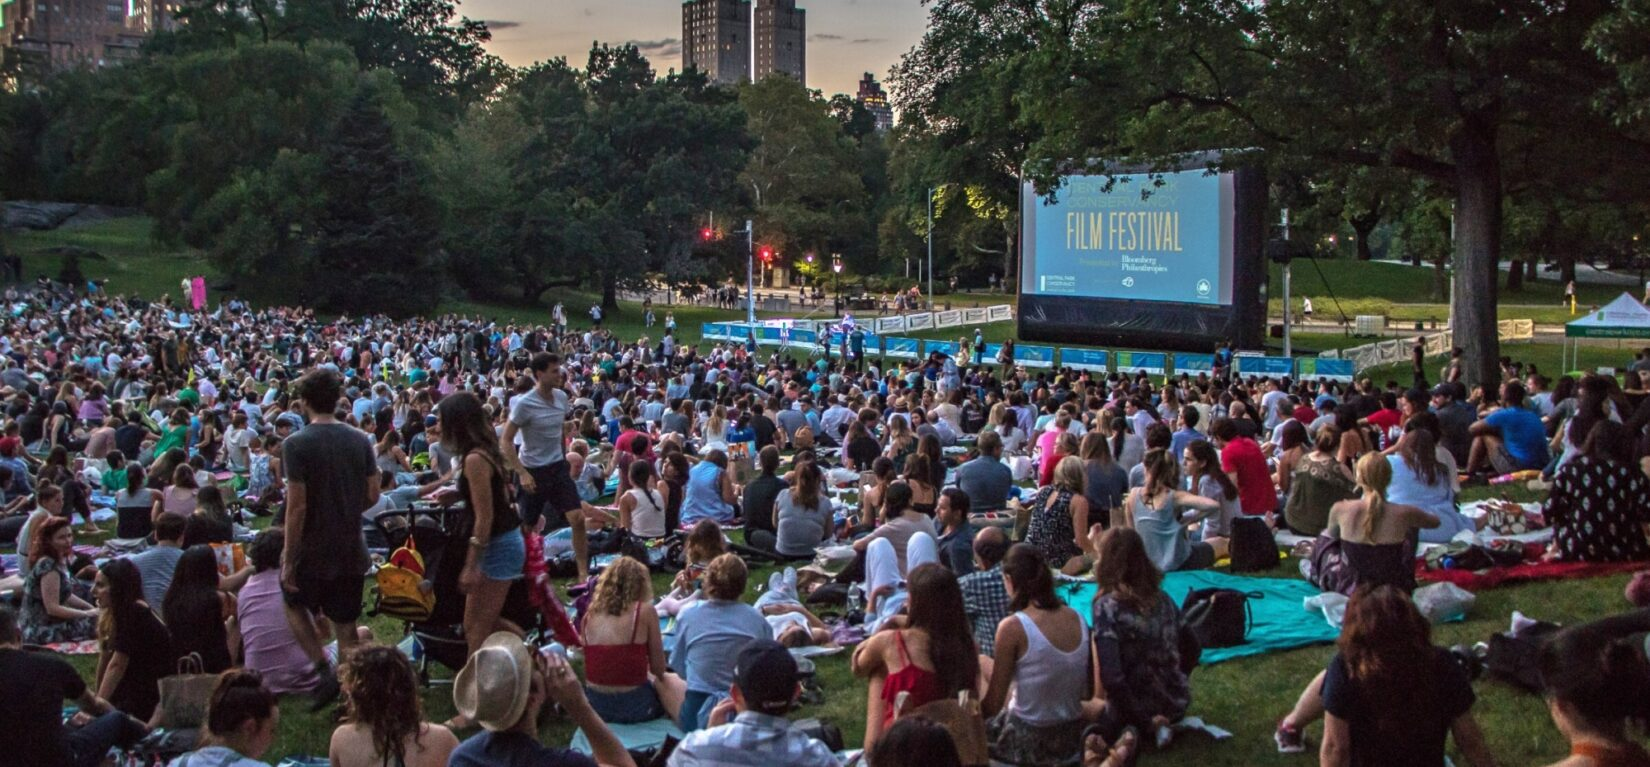 Hundreds of movie fans sit before a crowd-sized movie screen in the Sheep Medow at dusk.